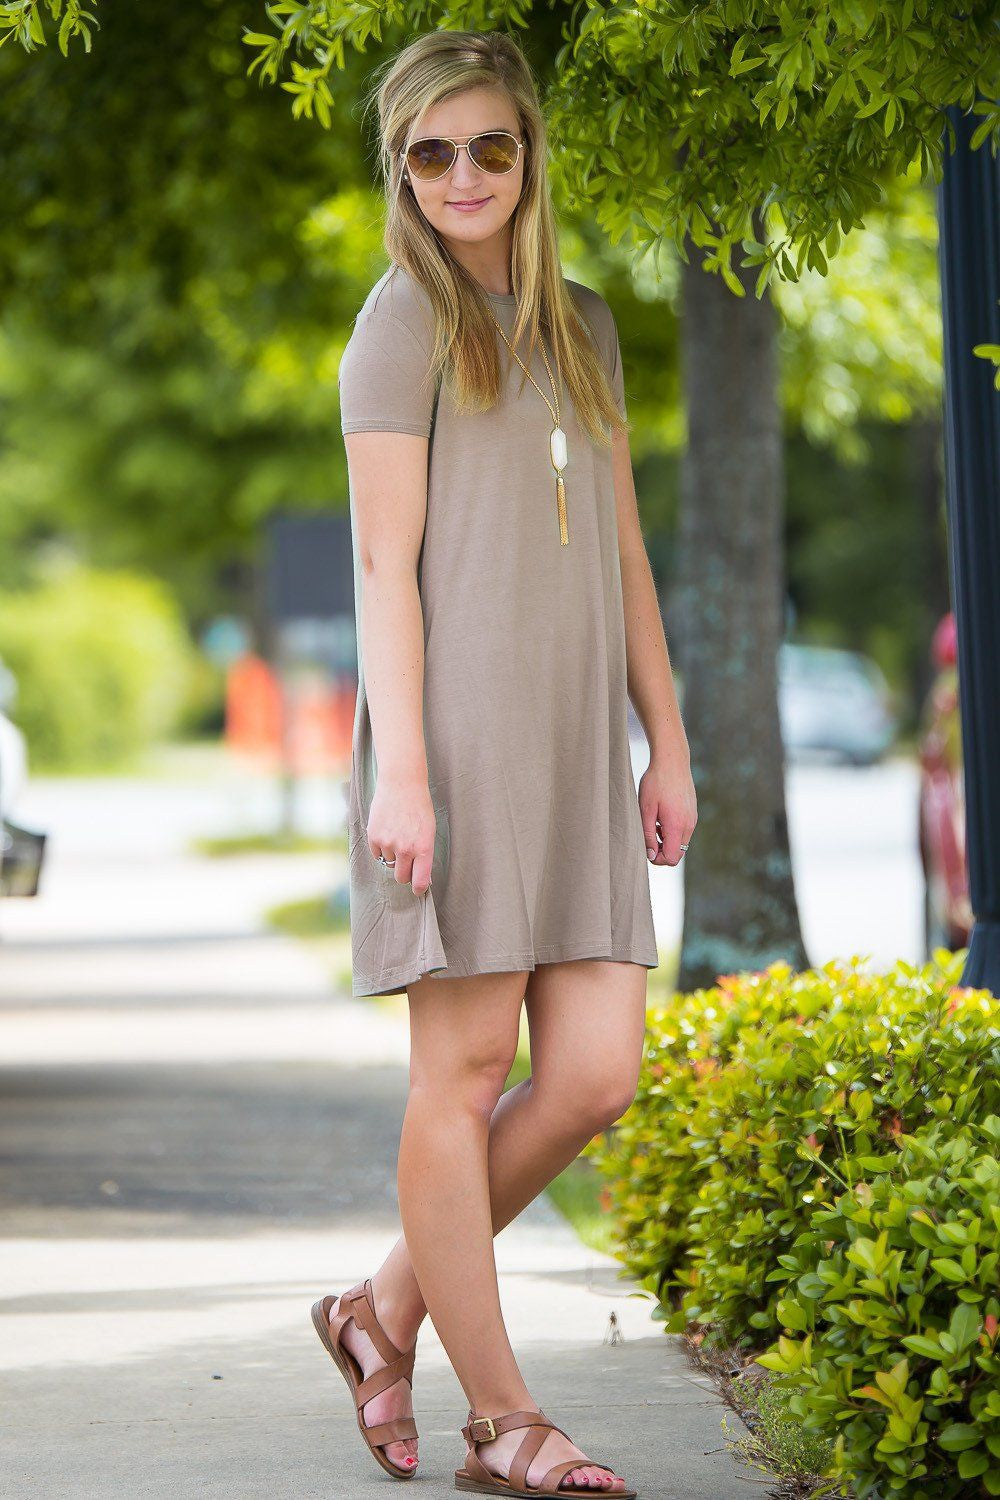 Piko Short Sleeve Swing Dress - Khaki - Piko Clothing